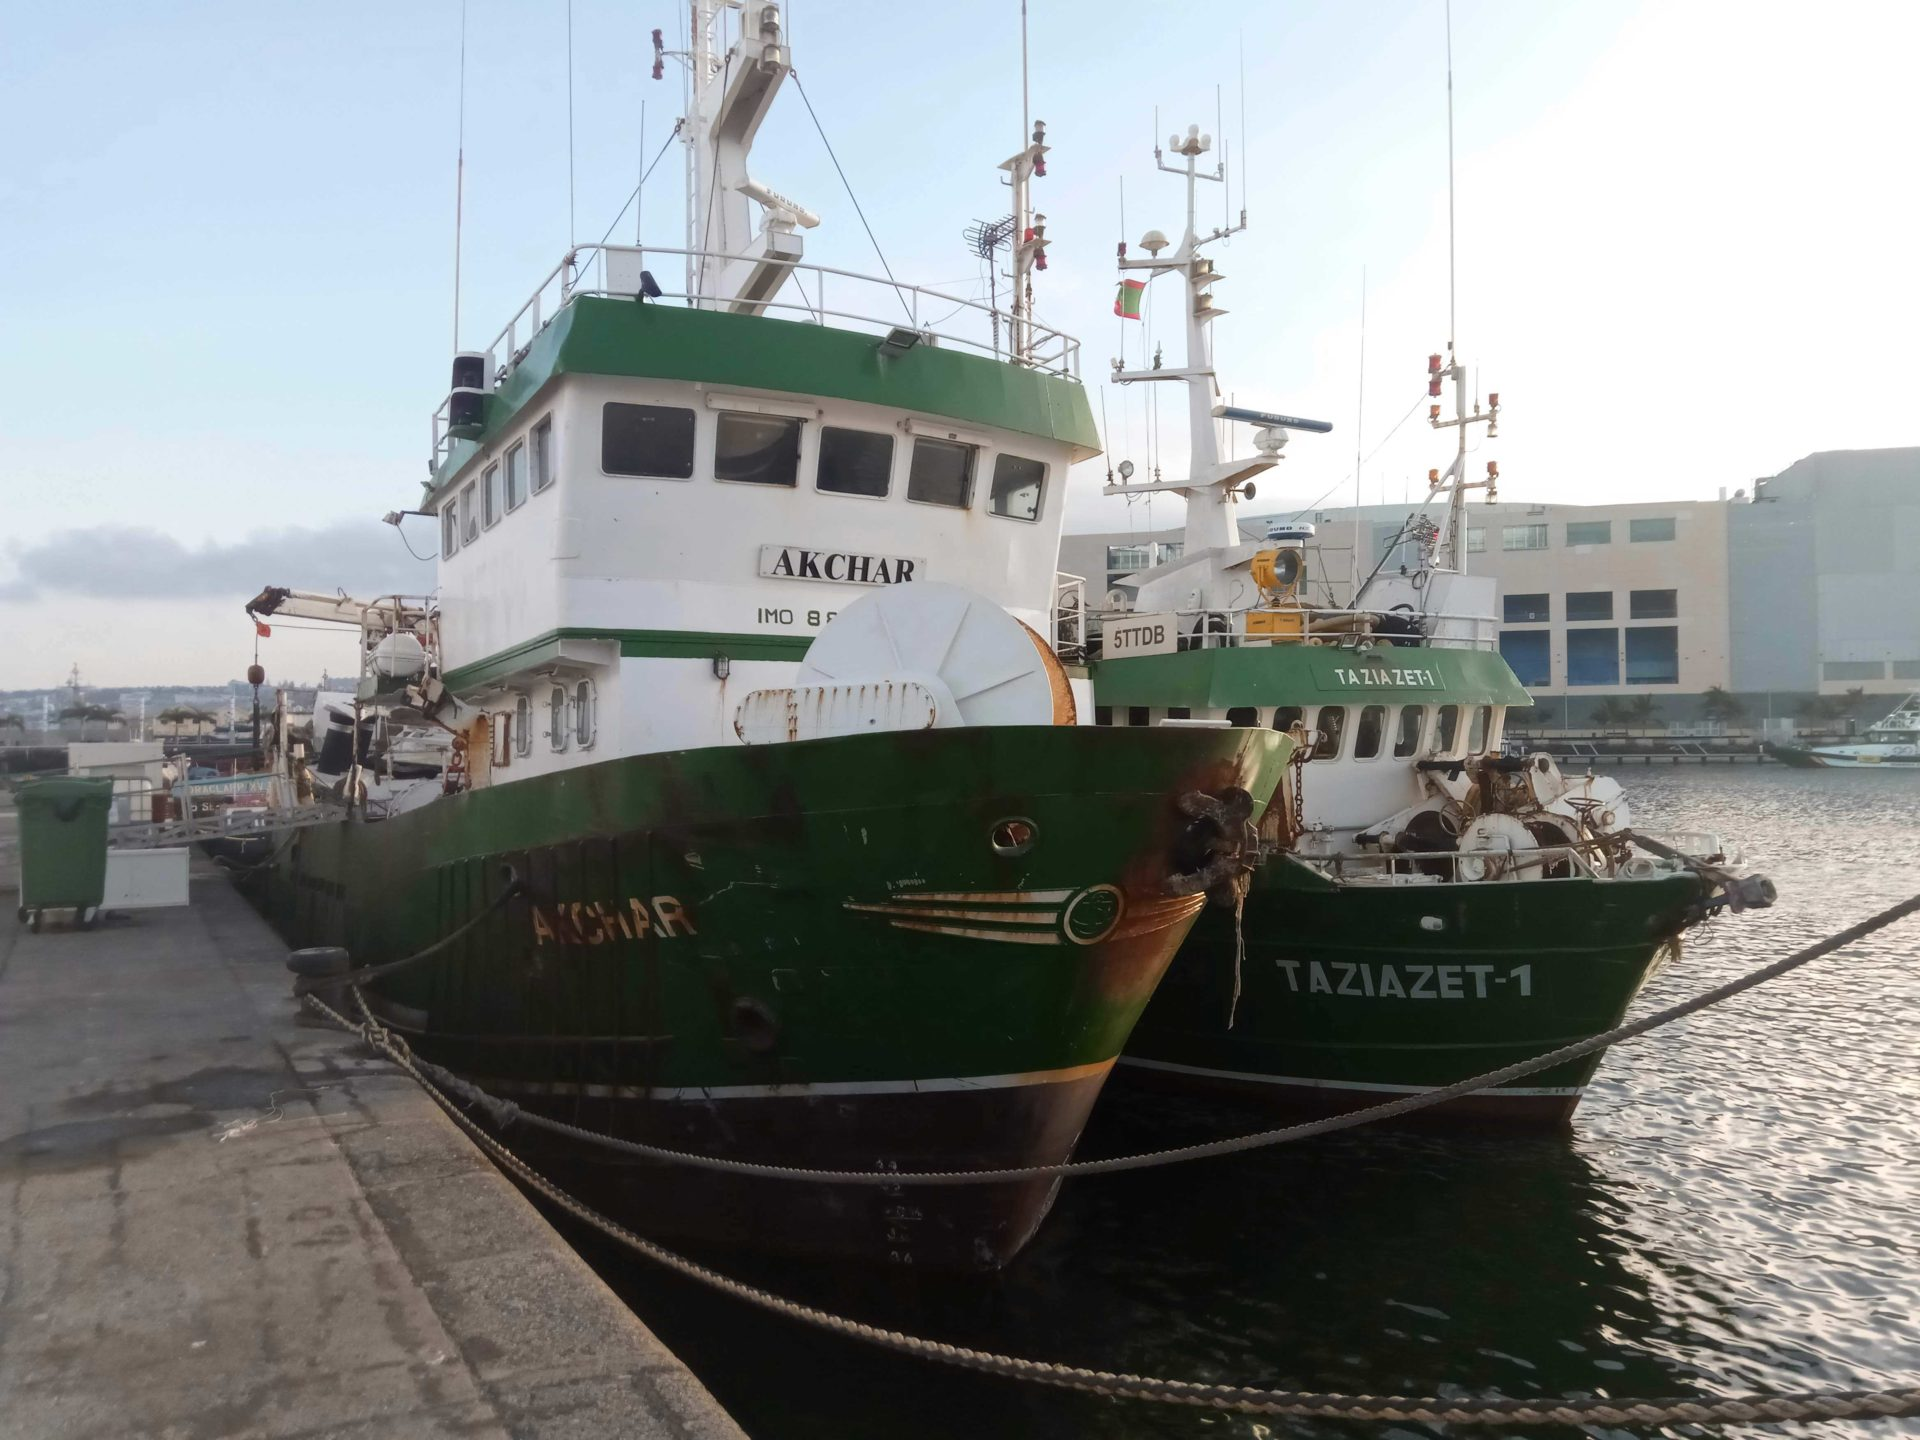 Fishing-vessels-Services-repair-and-maintenance-tenerife